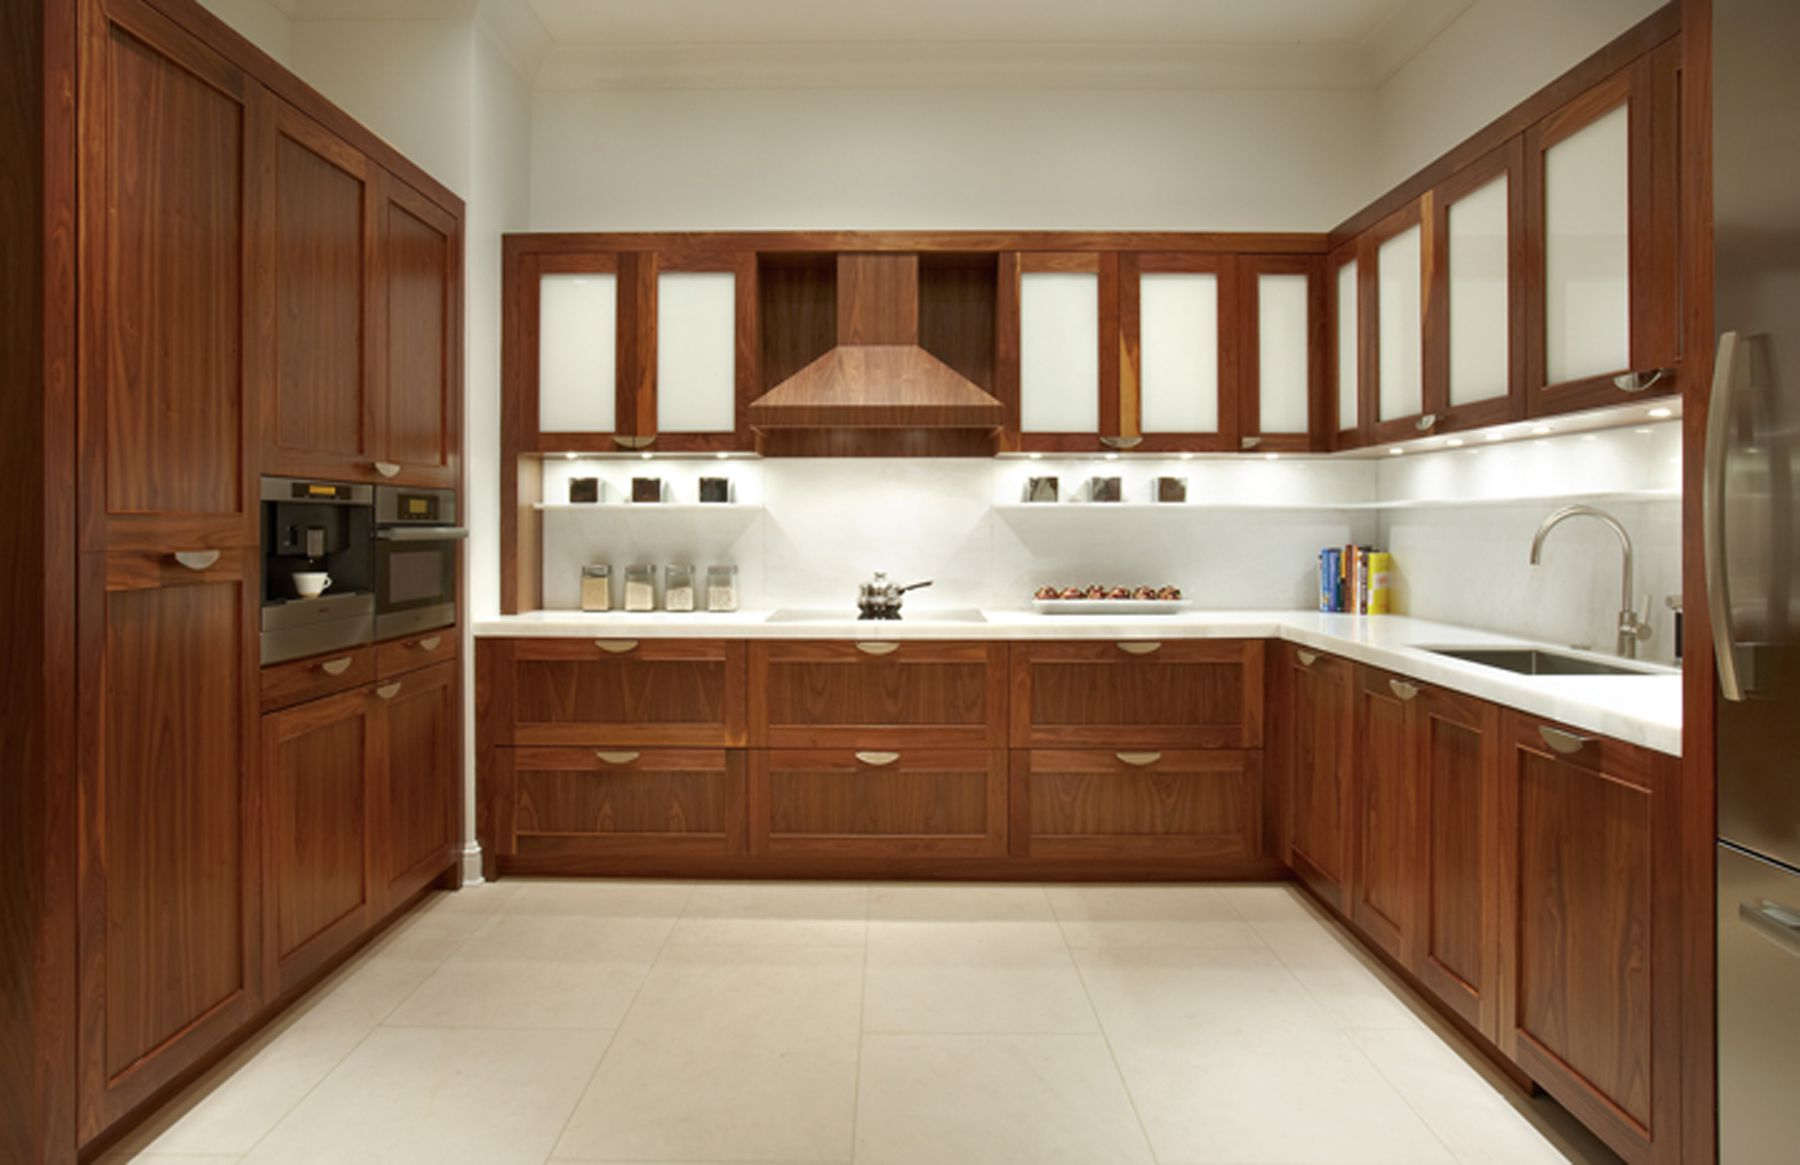 Marvelous Design Of The U Shape Kitchen Areas With Brown Cabinets Kitchen Design With White Marble Tops